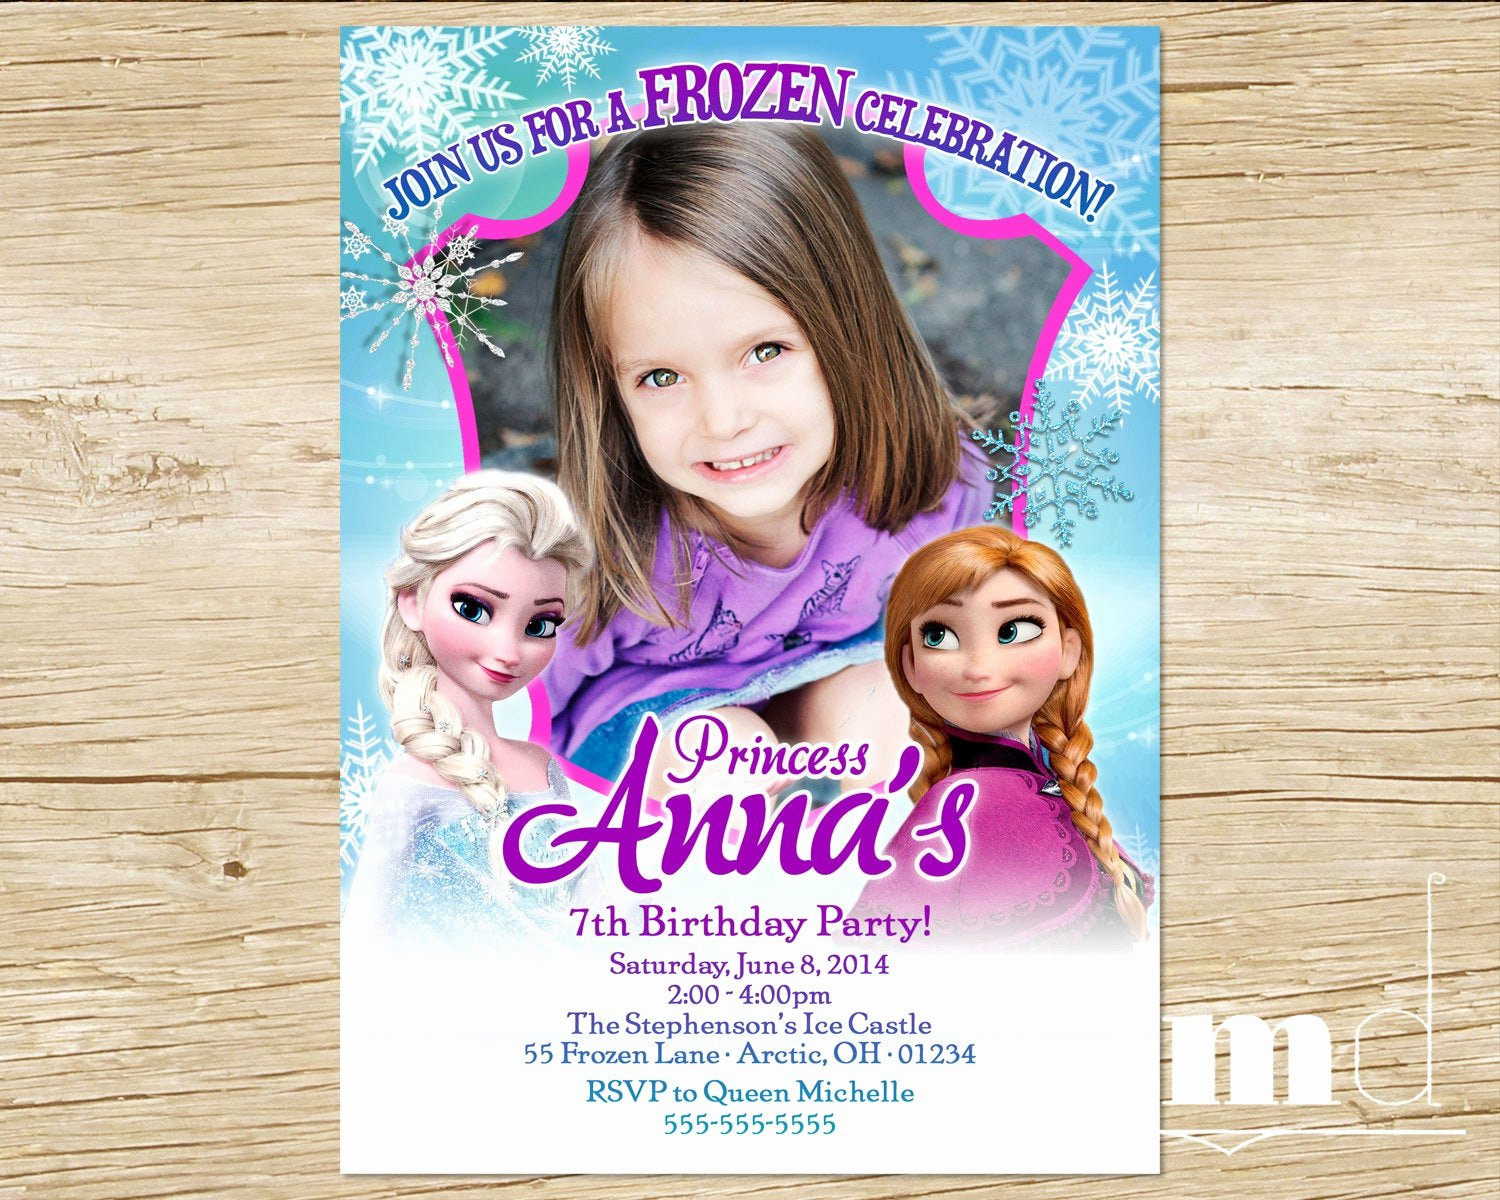 Frozen Bday Party Invitations Elegant Frozen Birthday Party Invitation with by Mulligandesign